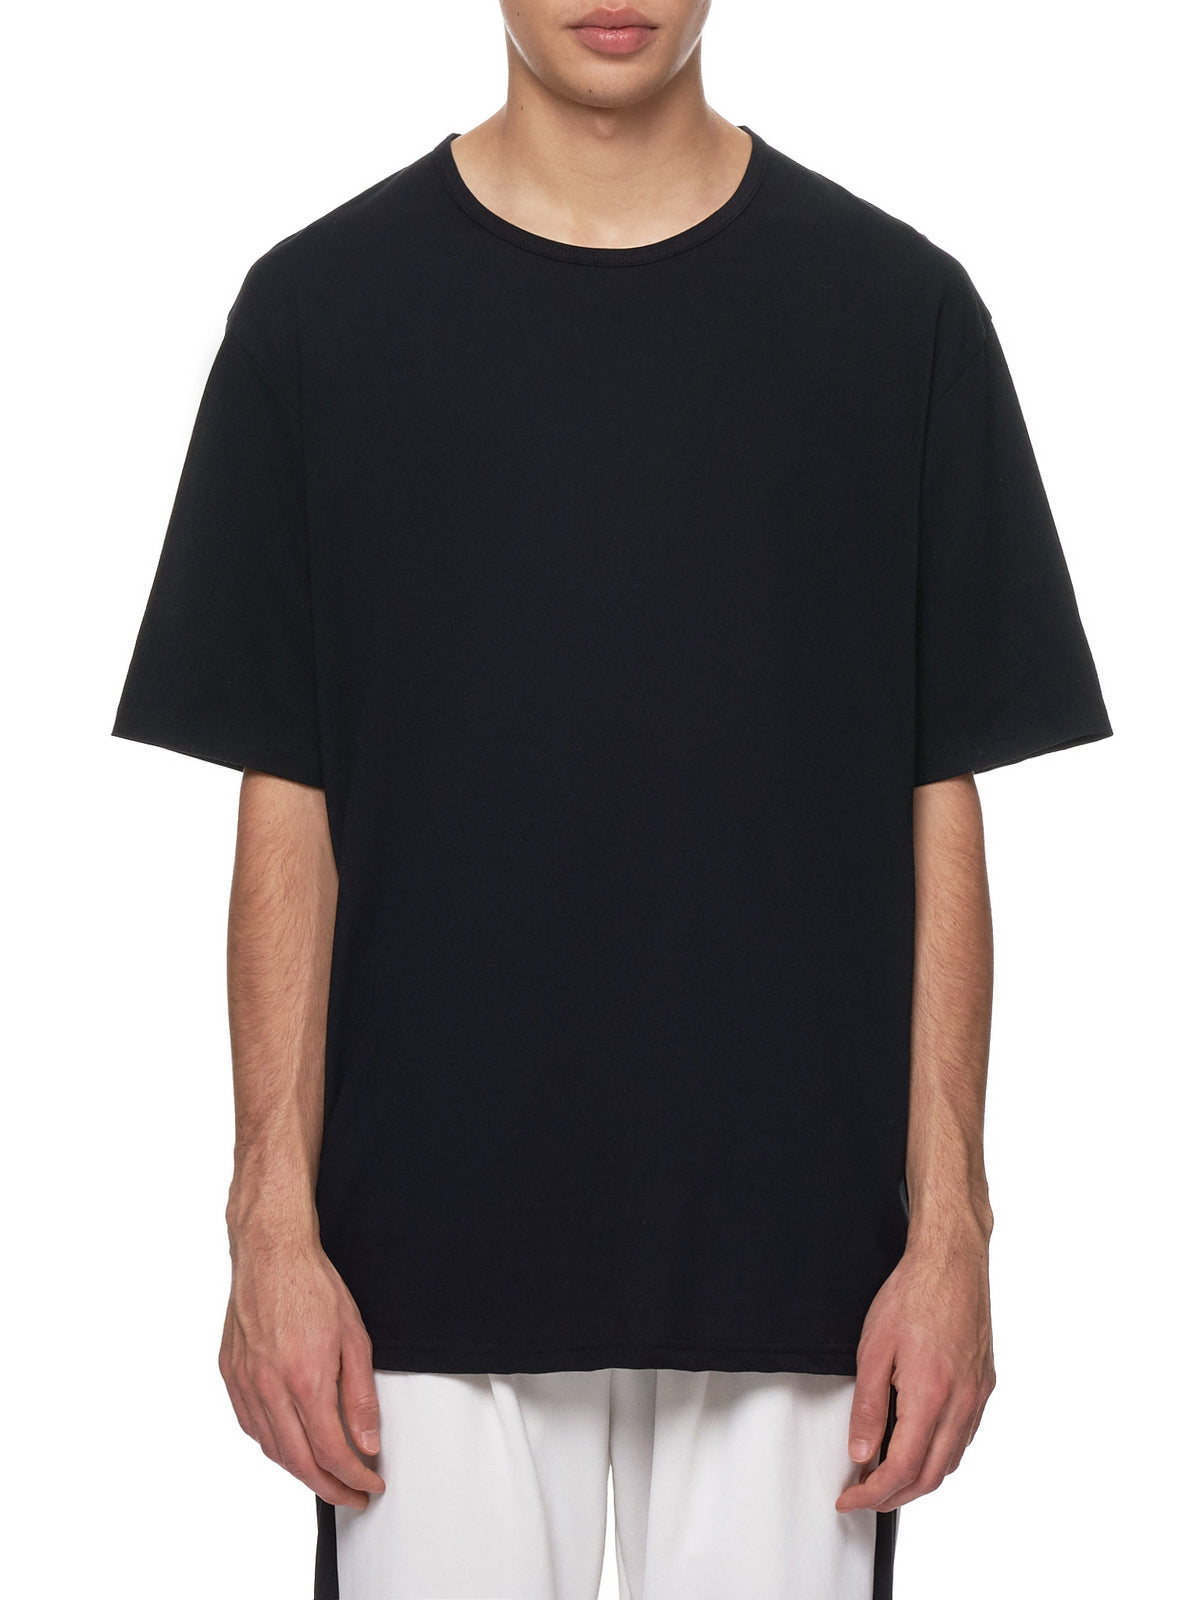 Attachment Kazuyuki Kumagai Tee Shirt - Hlorenzo Front